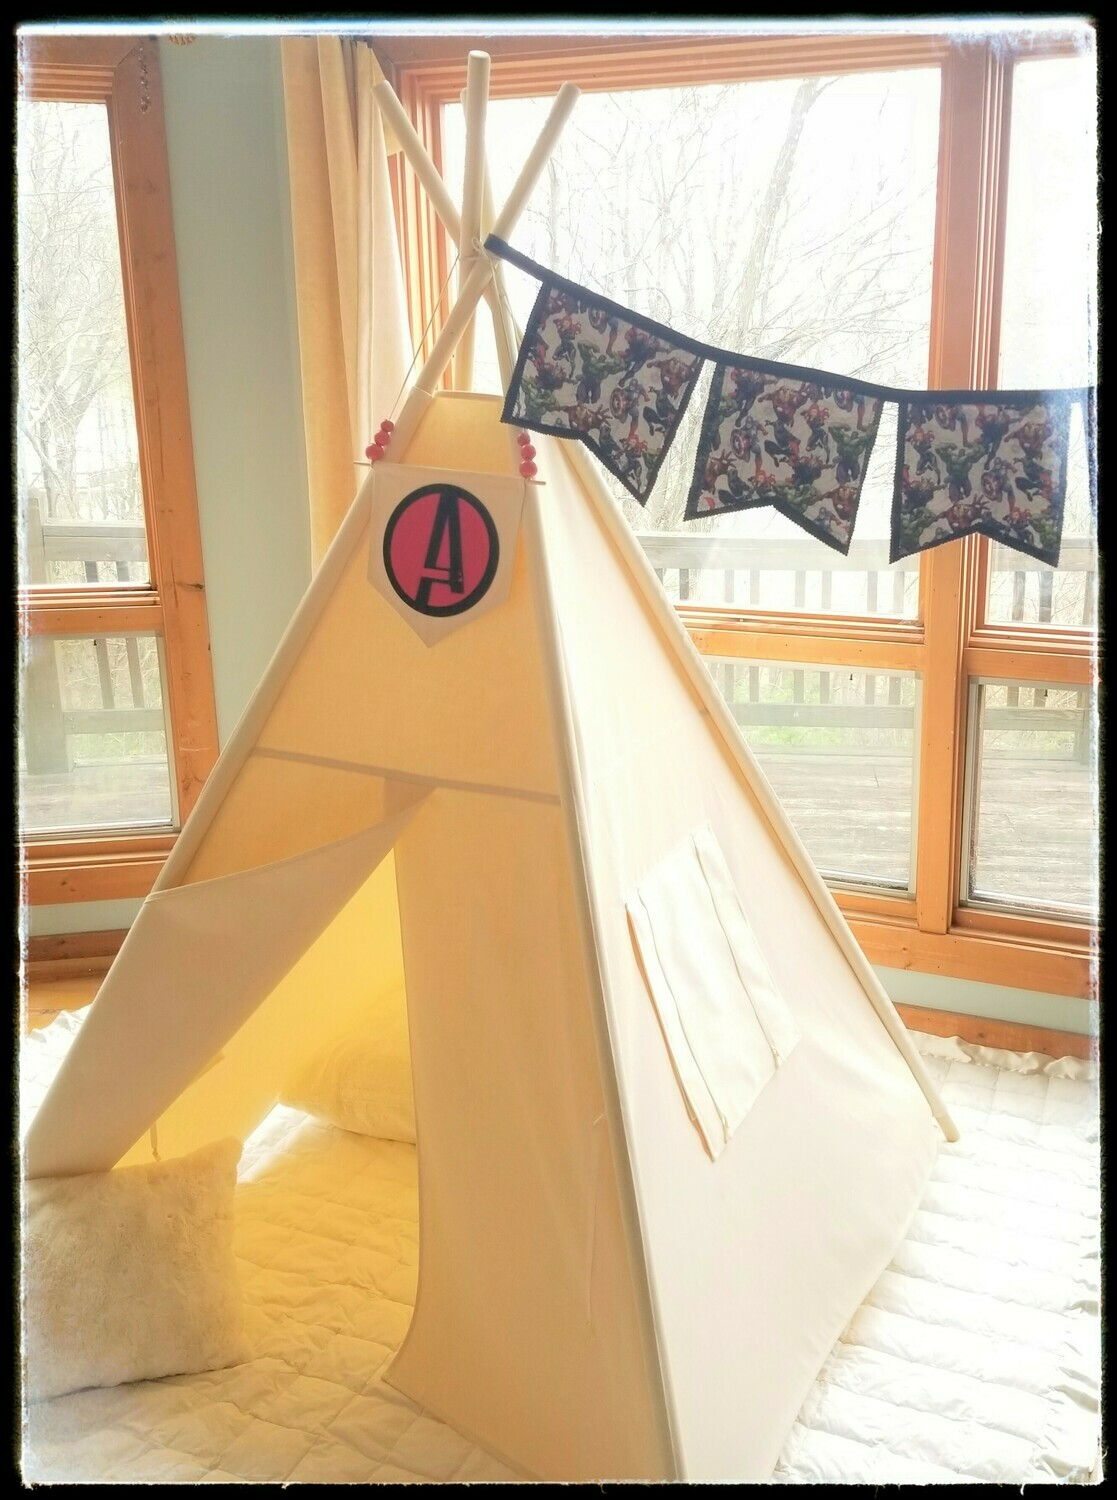 Avengers Teepee, Kids Teepee, Reading Nook,  Kids Room Decor, Playroom Tent, Cotton Canvas Kids Play Tent